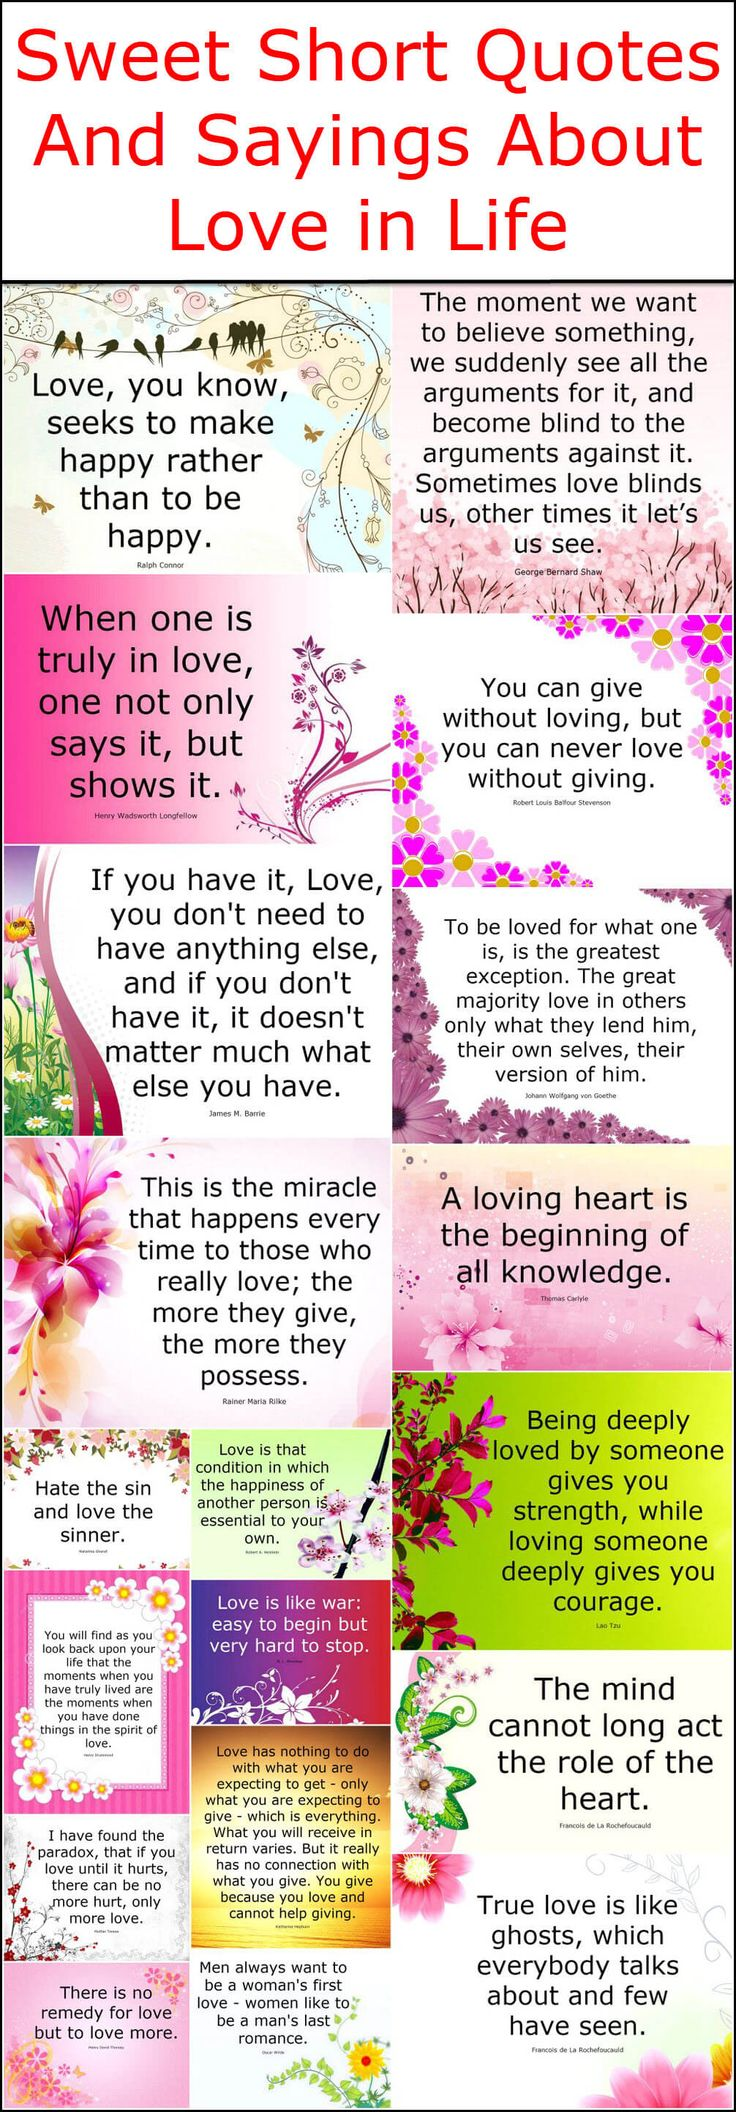 Here we are bringing to you another wonderful post of few amazing and lovely quotes that will change your life positively. These sweet and lovely short quotes and sayings will reveal you the importance of love in your life. These love posters are not only best to express our own feelings and emotions to us in the form of words but also good-enough to increase our knowledge. Let's change your priorities and show your attention and care to your loved one to make your life happier and full of…